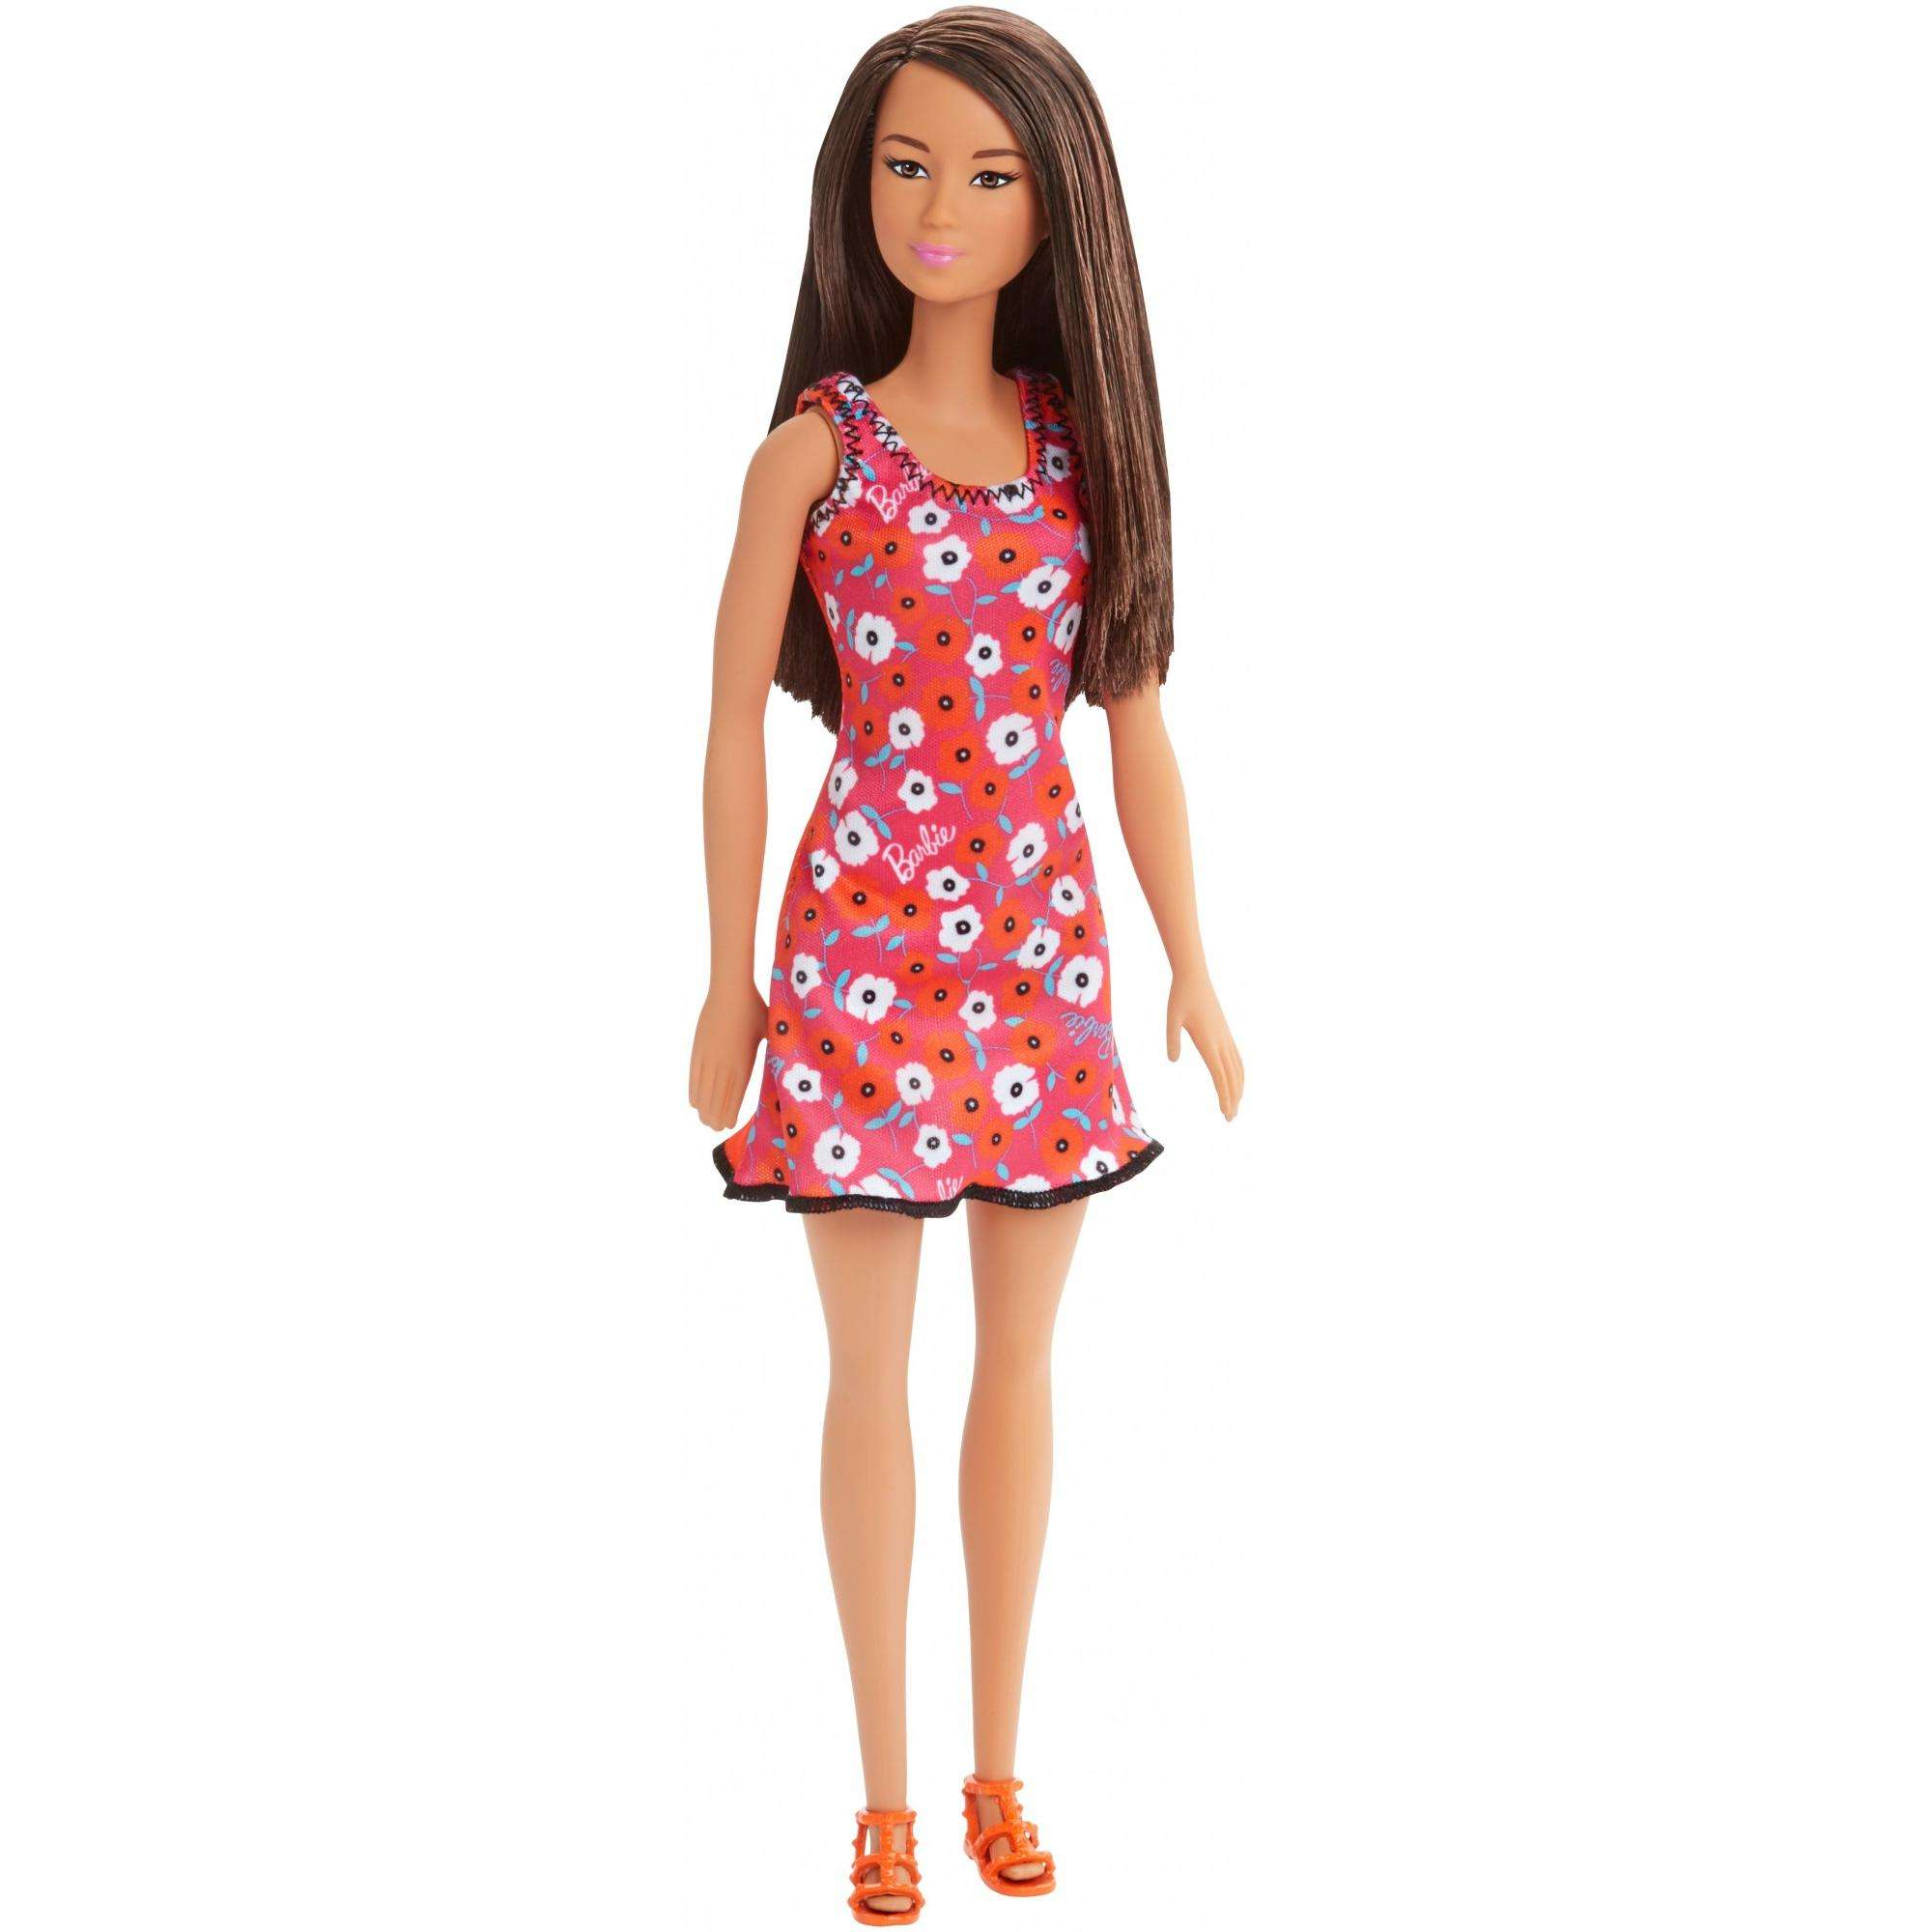 Barbie Doll, Red Dress by MATTEL INC.